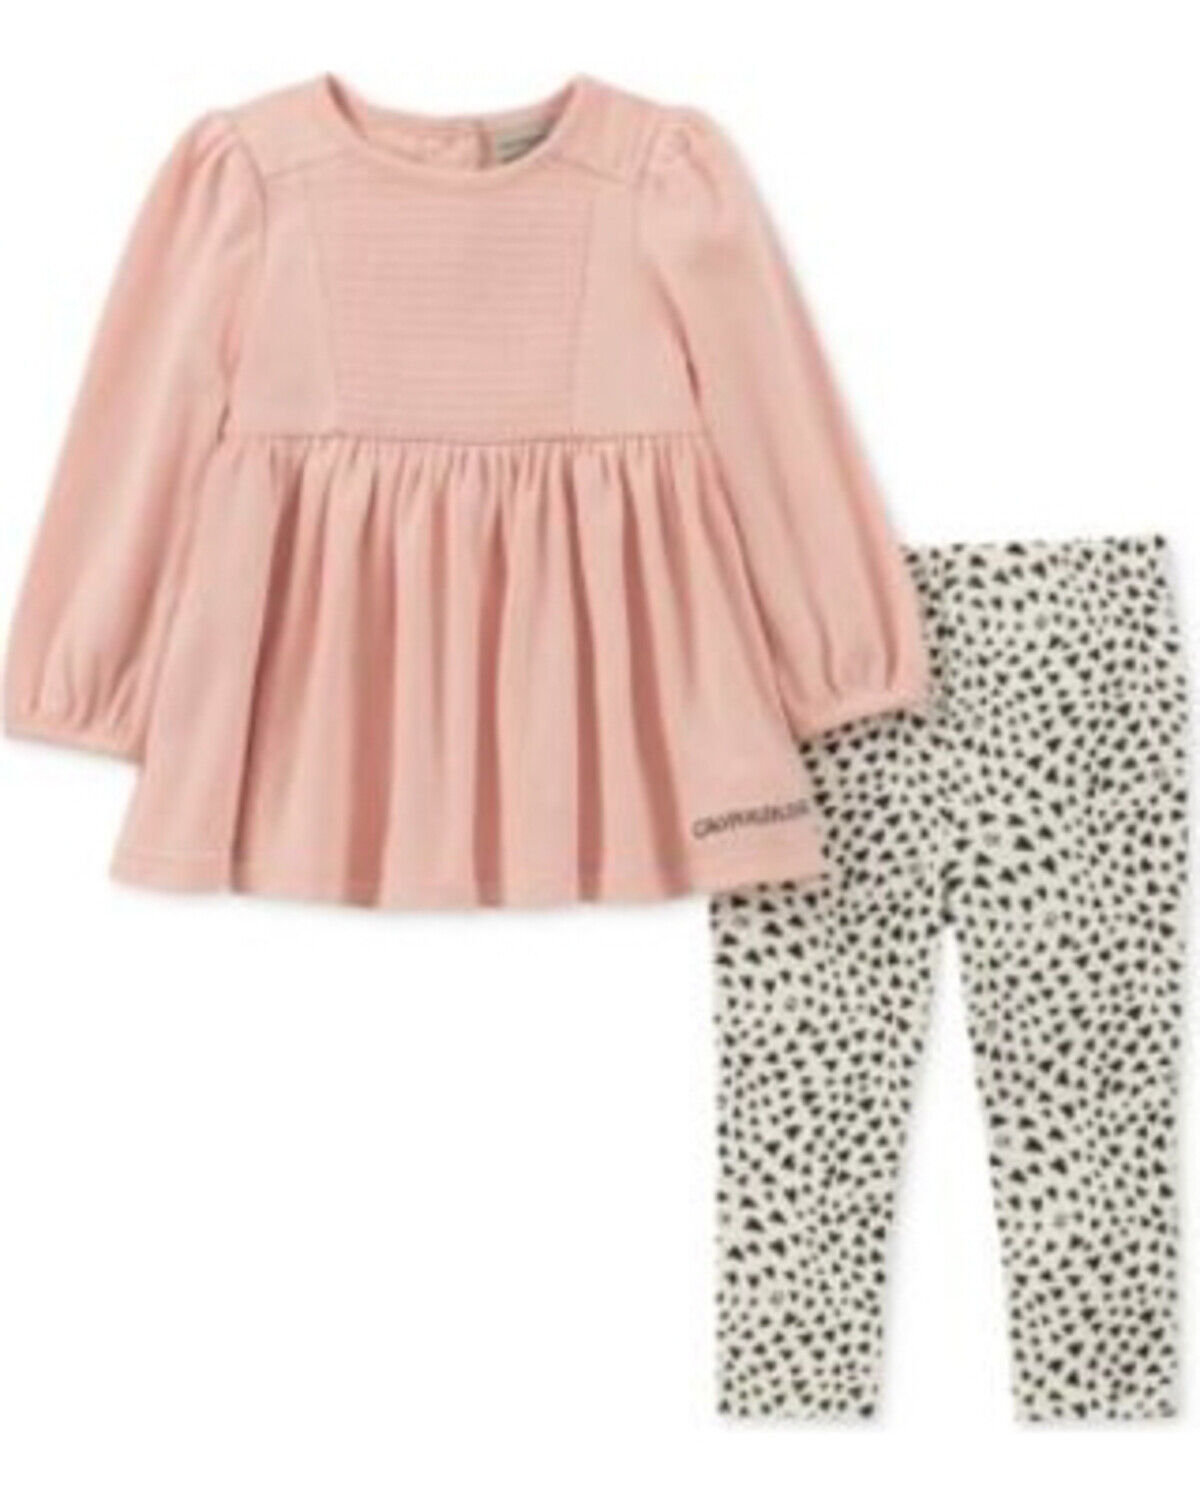 NEW Calvin Klein Baby Girls 2 Piece Ribbed Tunic and Hearts